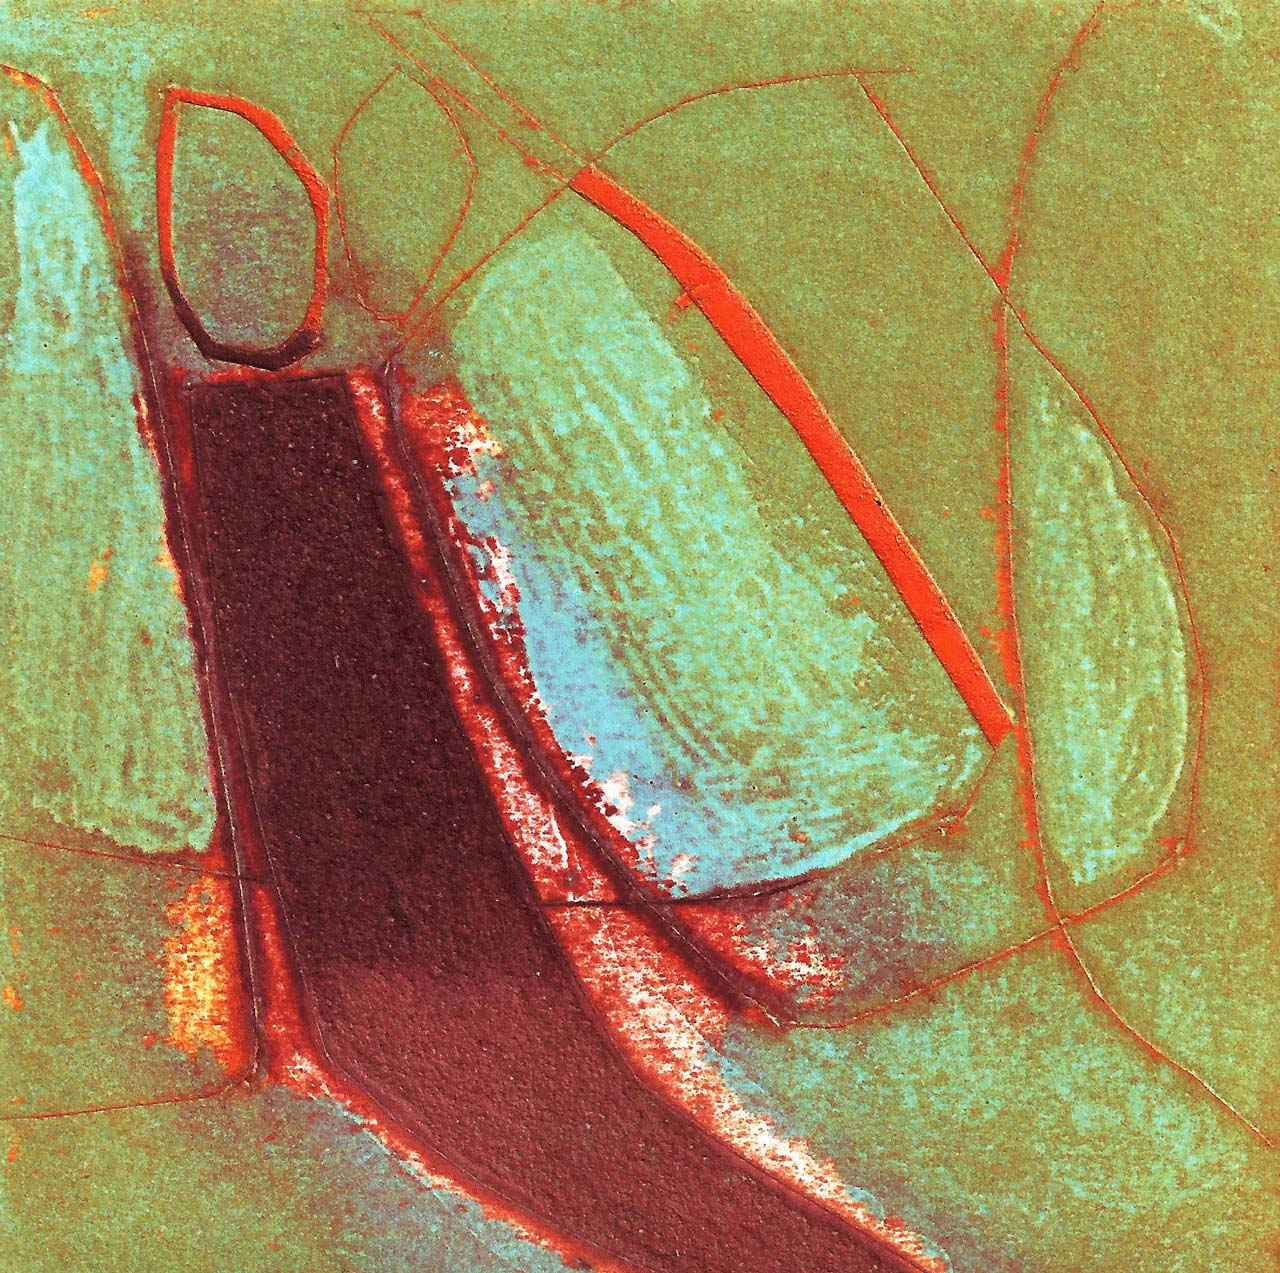 Fogou collagraph 10 x 10 cm